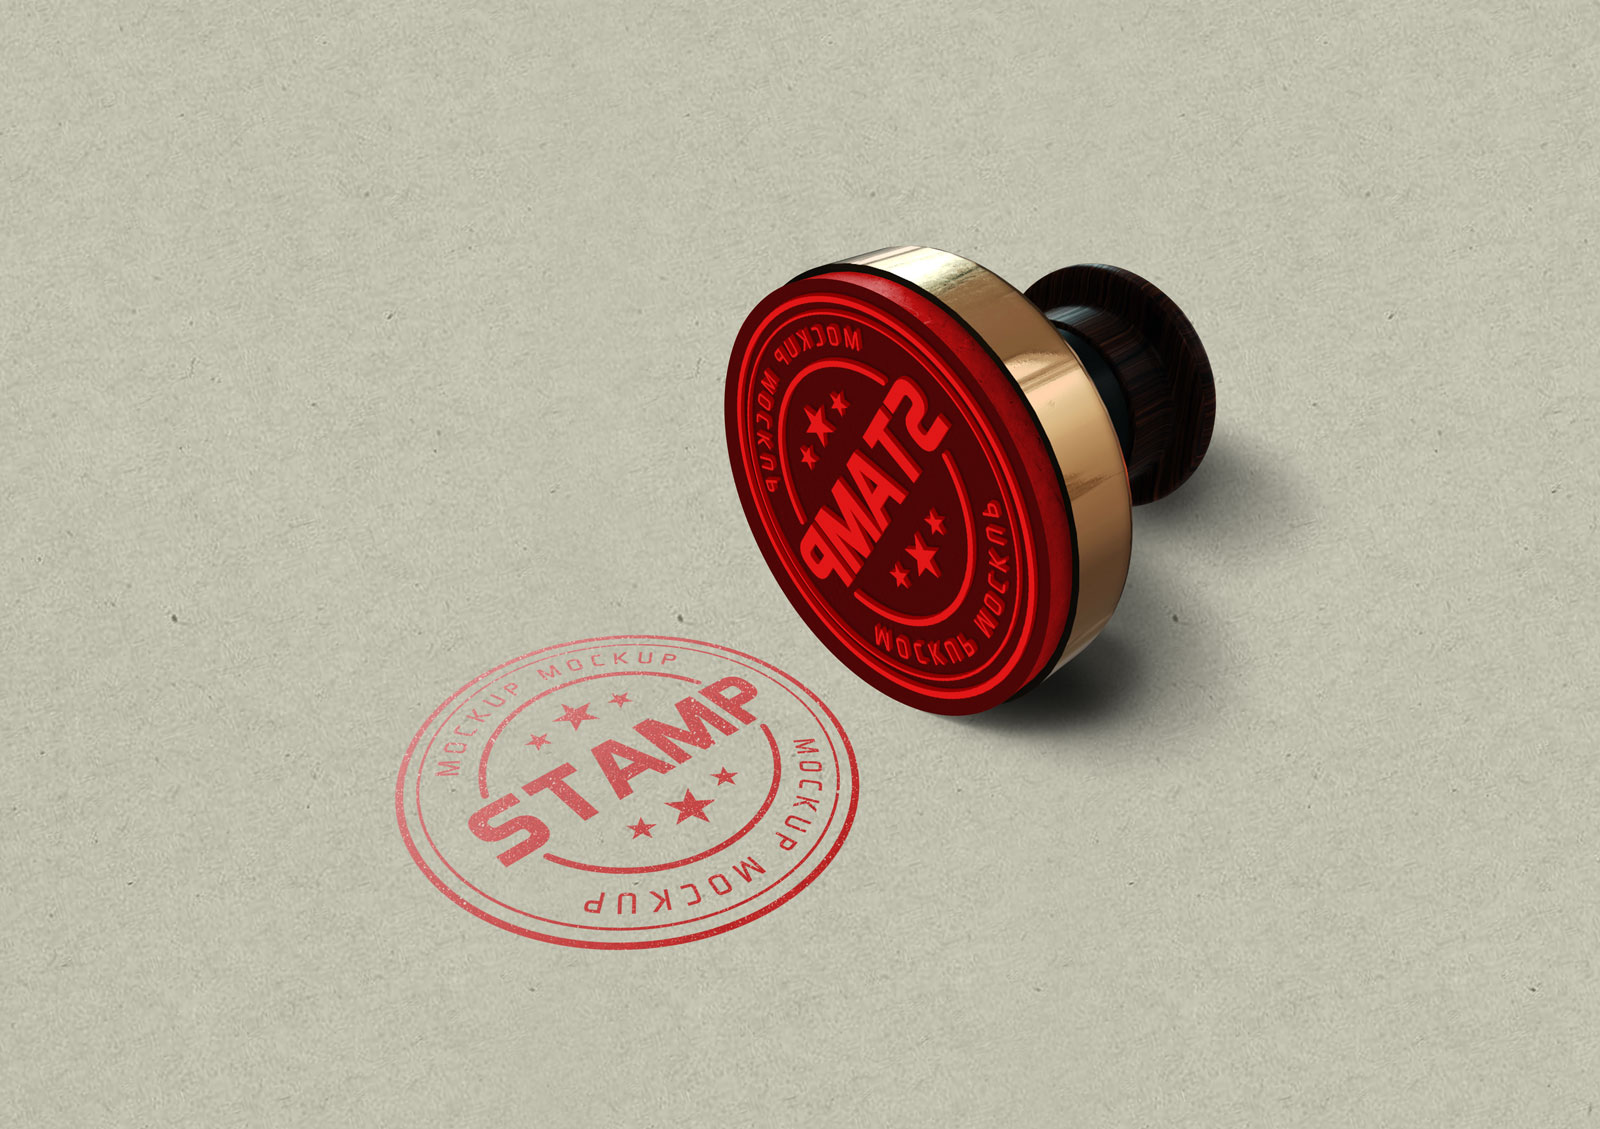 Free Round Rubber Stamp Mockup PSD